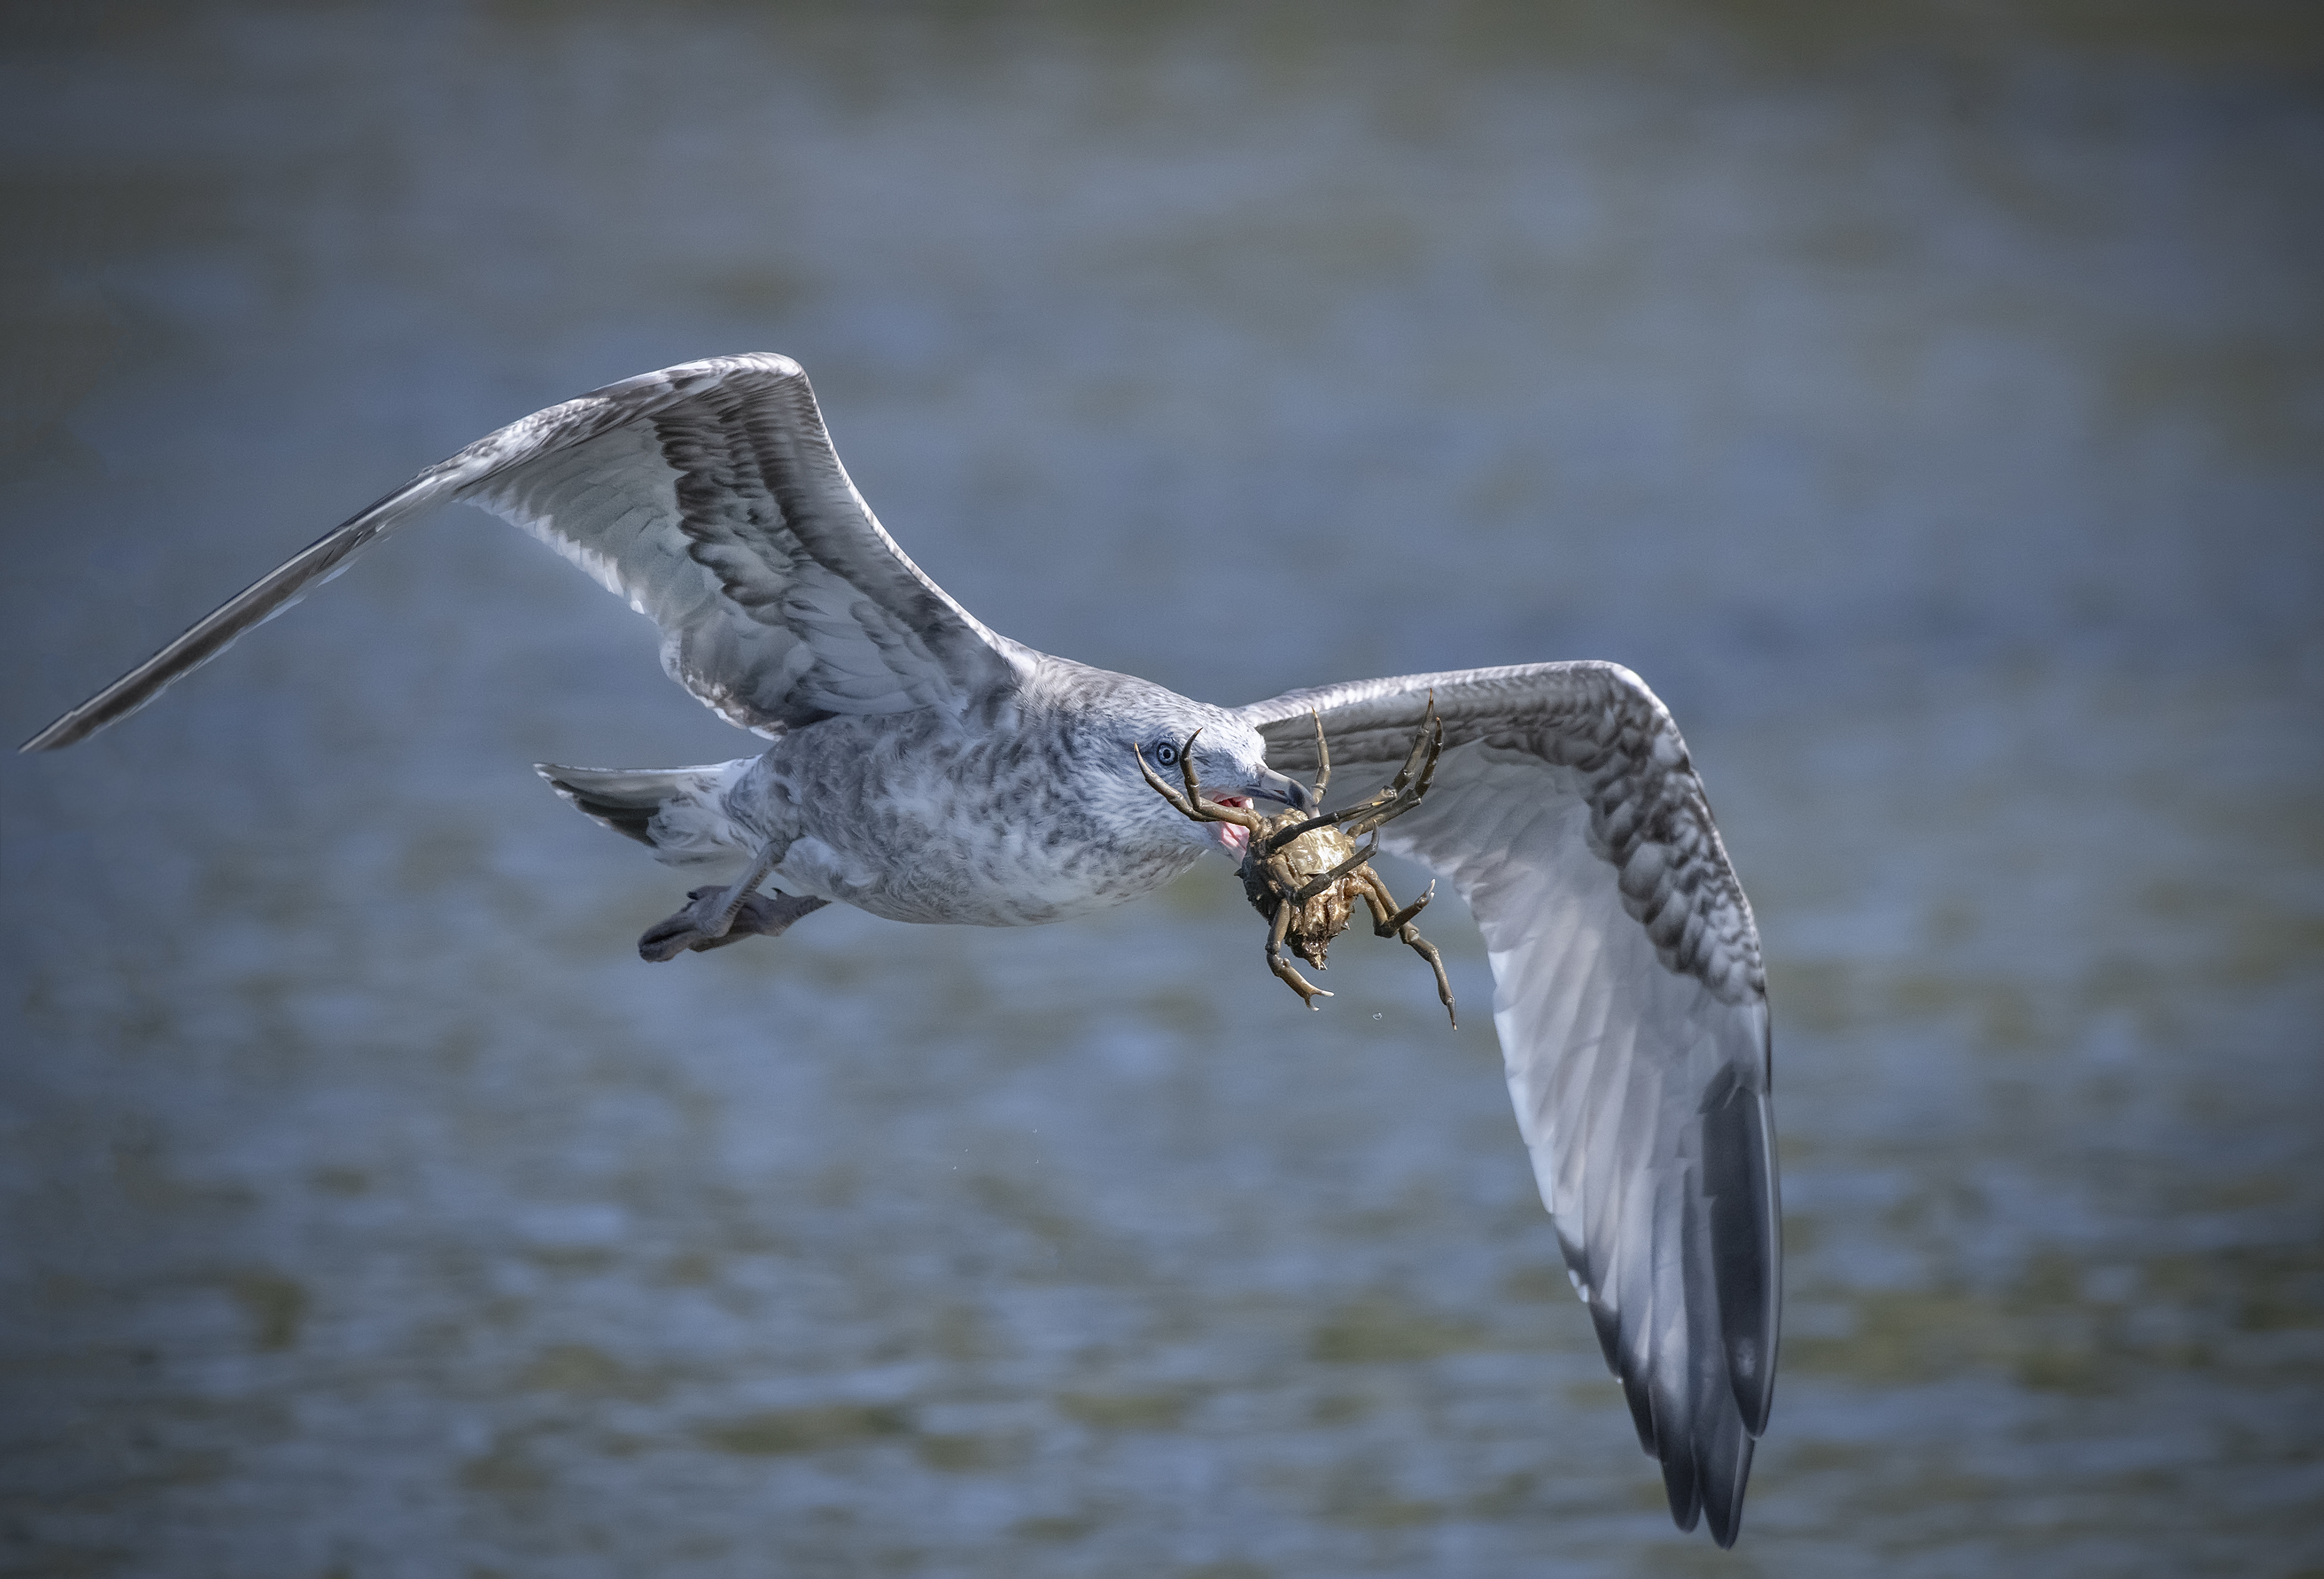 Seagul-with-spider-crab